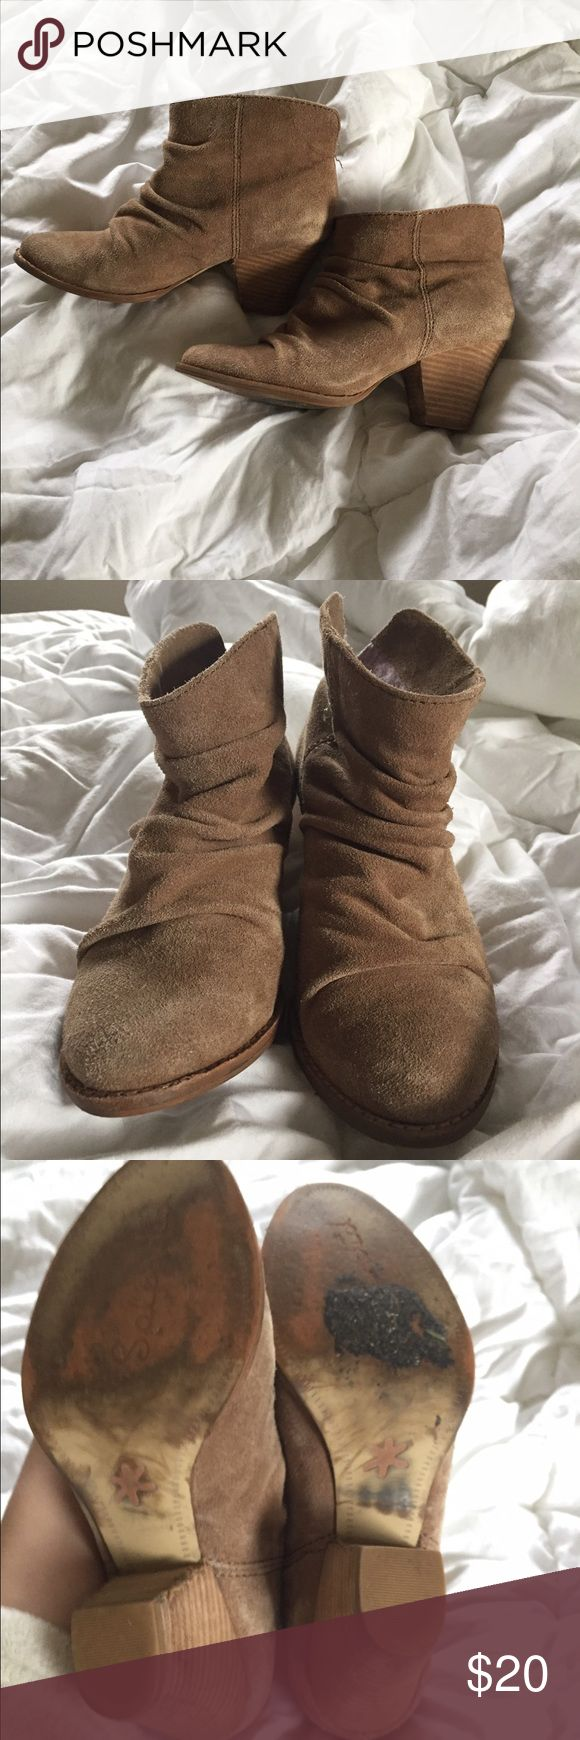 Splendid faux suede tan booties Size 6 1/2 faux suede Splendid booties. Color tan. Worn a number of times, but they still have a lot of life in them Splendid Shoes Ankle Boots & Booties